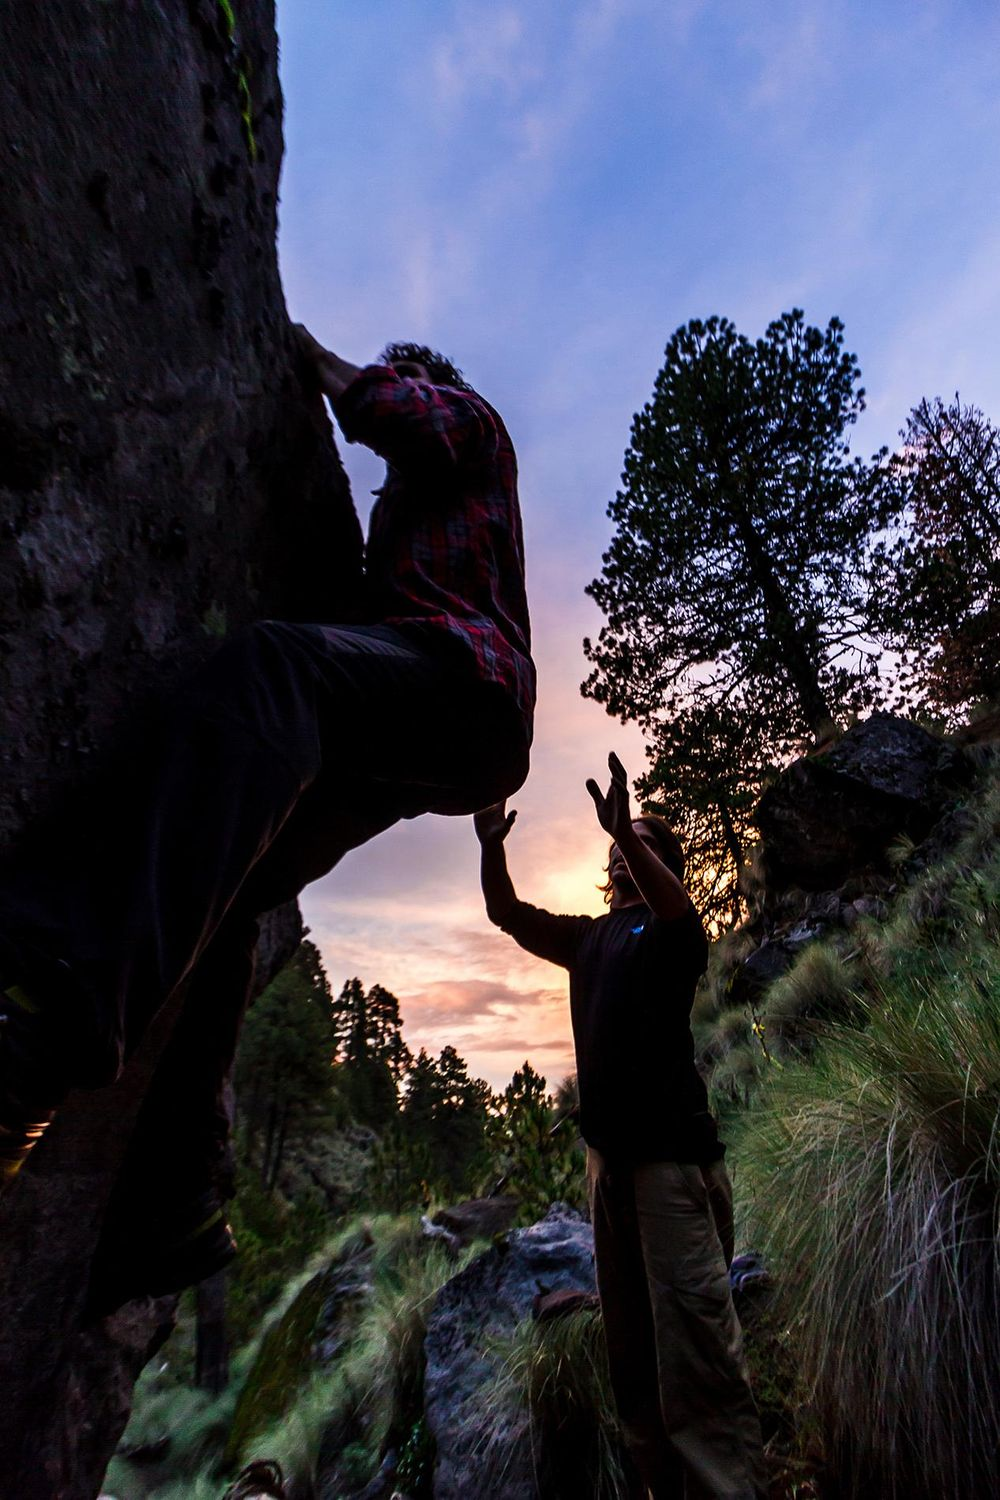 A weekend at El Nevado - image 1 - student project